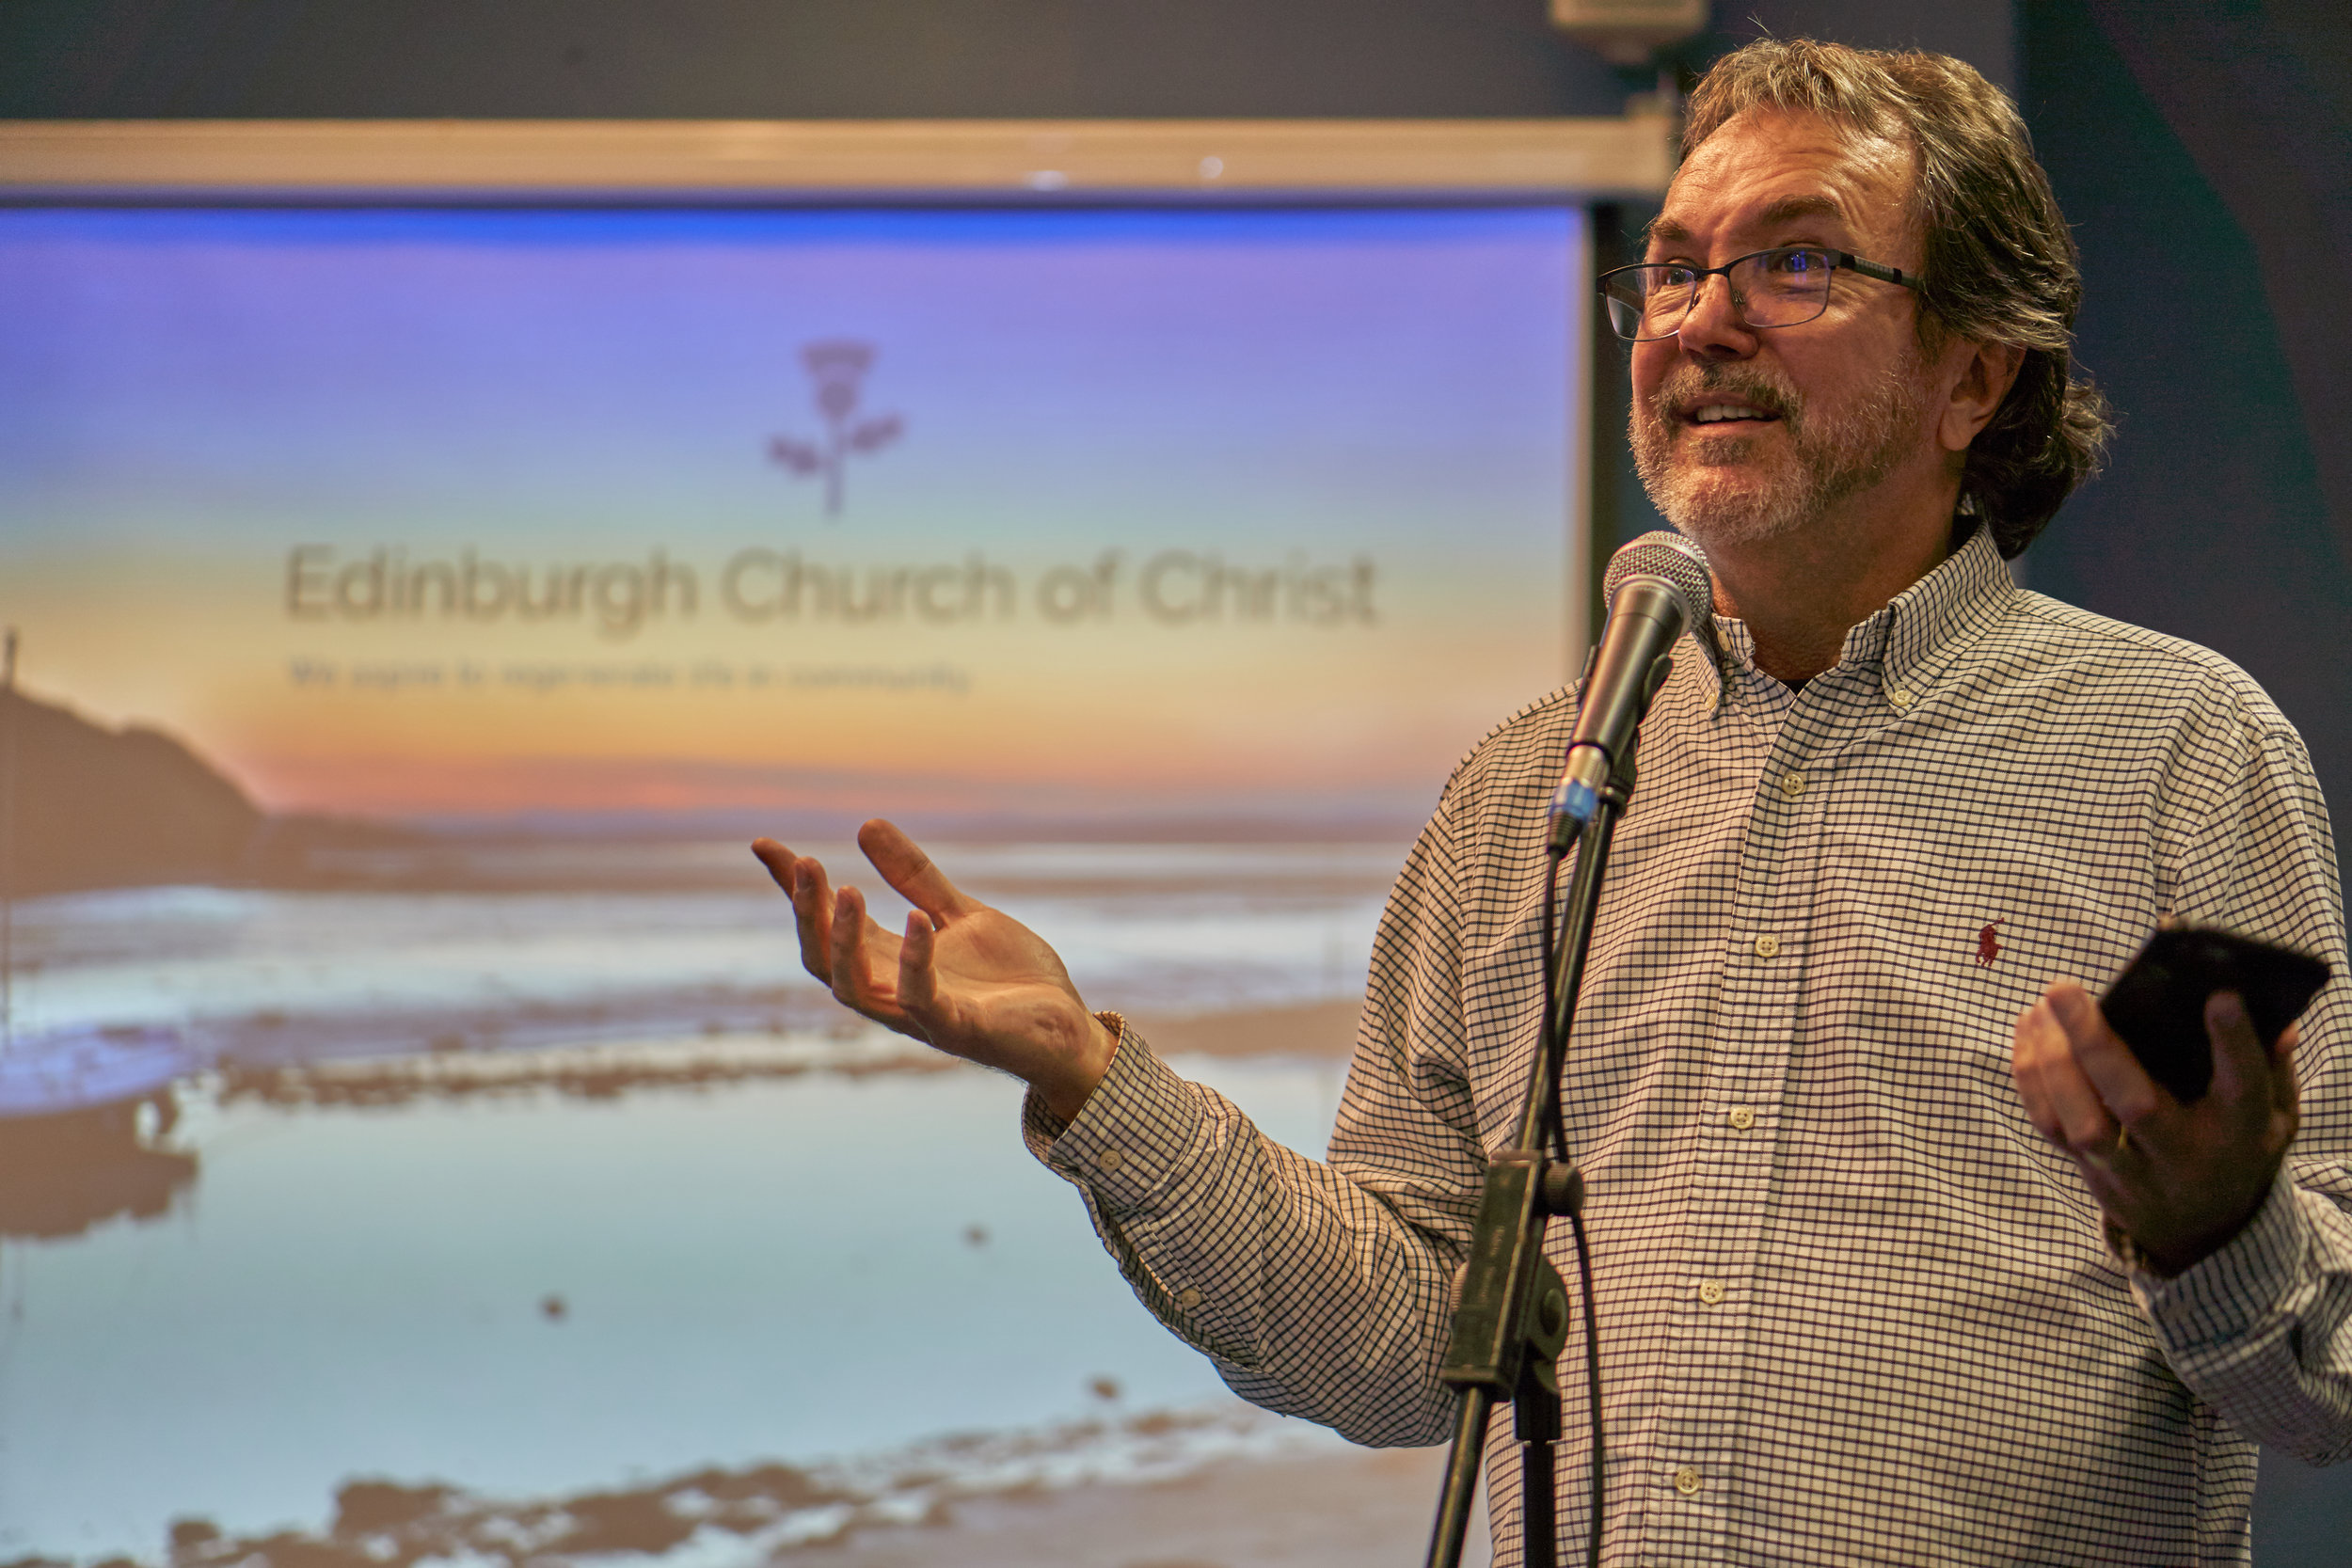 Sherwin teaches the Edinburgh Church of Christ that God sings to us and in God's eyes, all of us are singers, too.